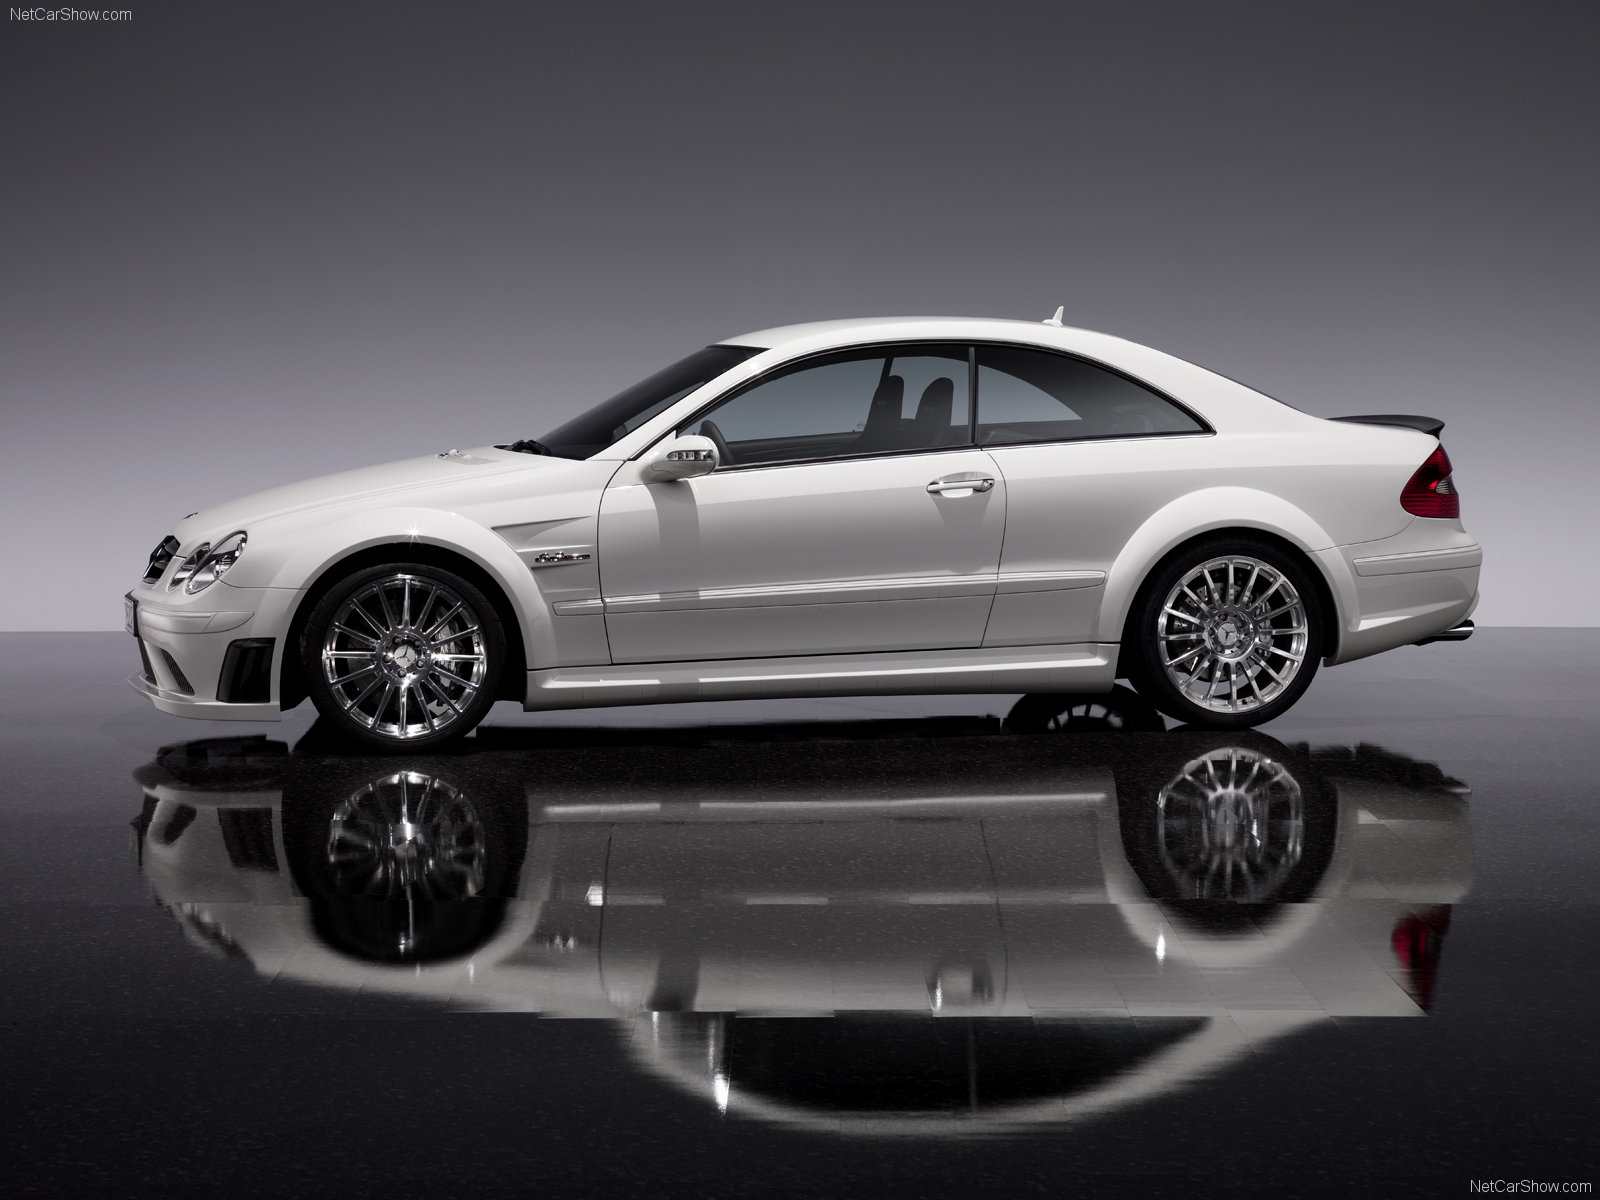 Mercedes CLK63 AMG The Black Series Has Never Looked Better Moto